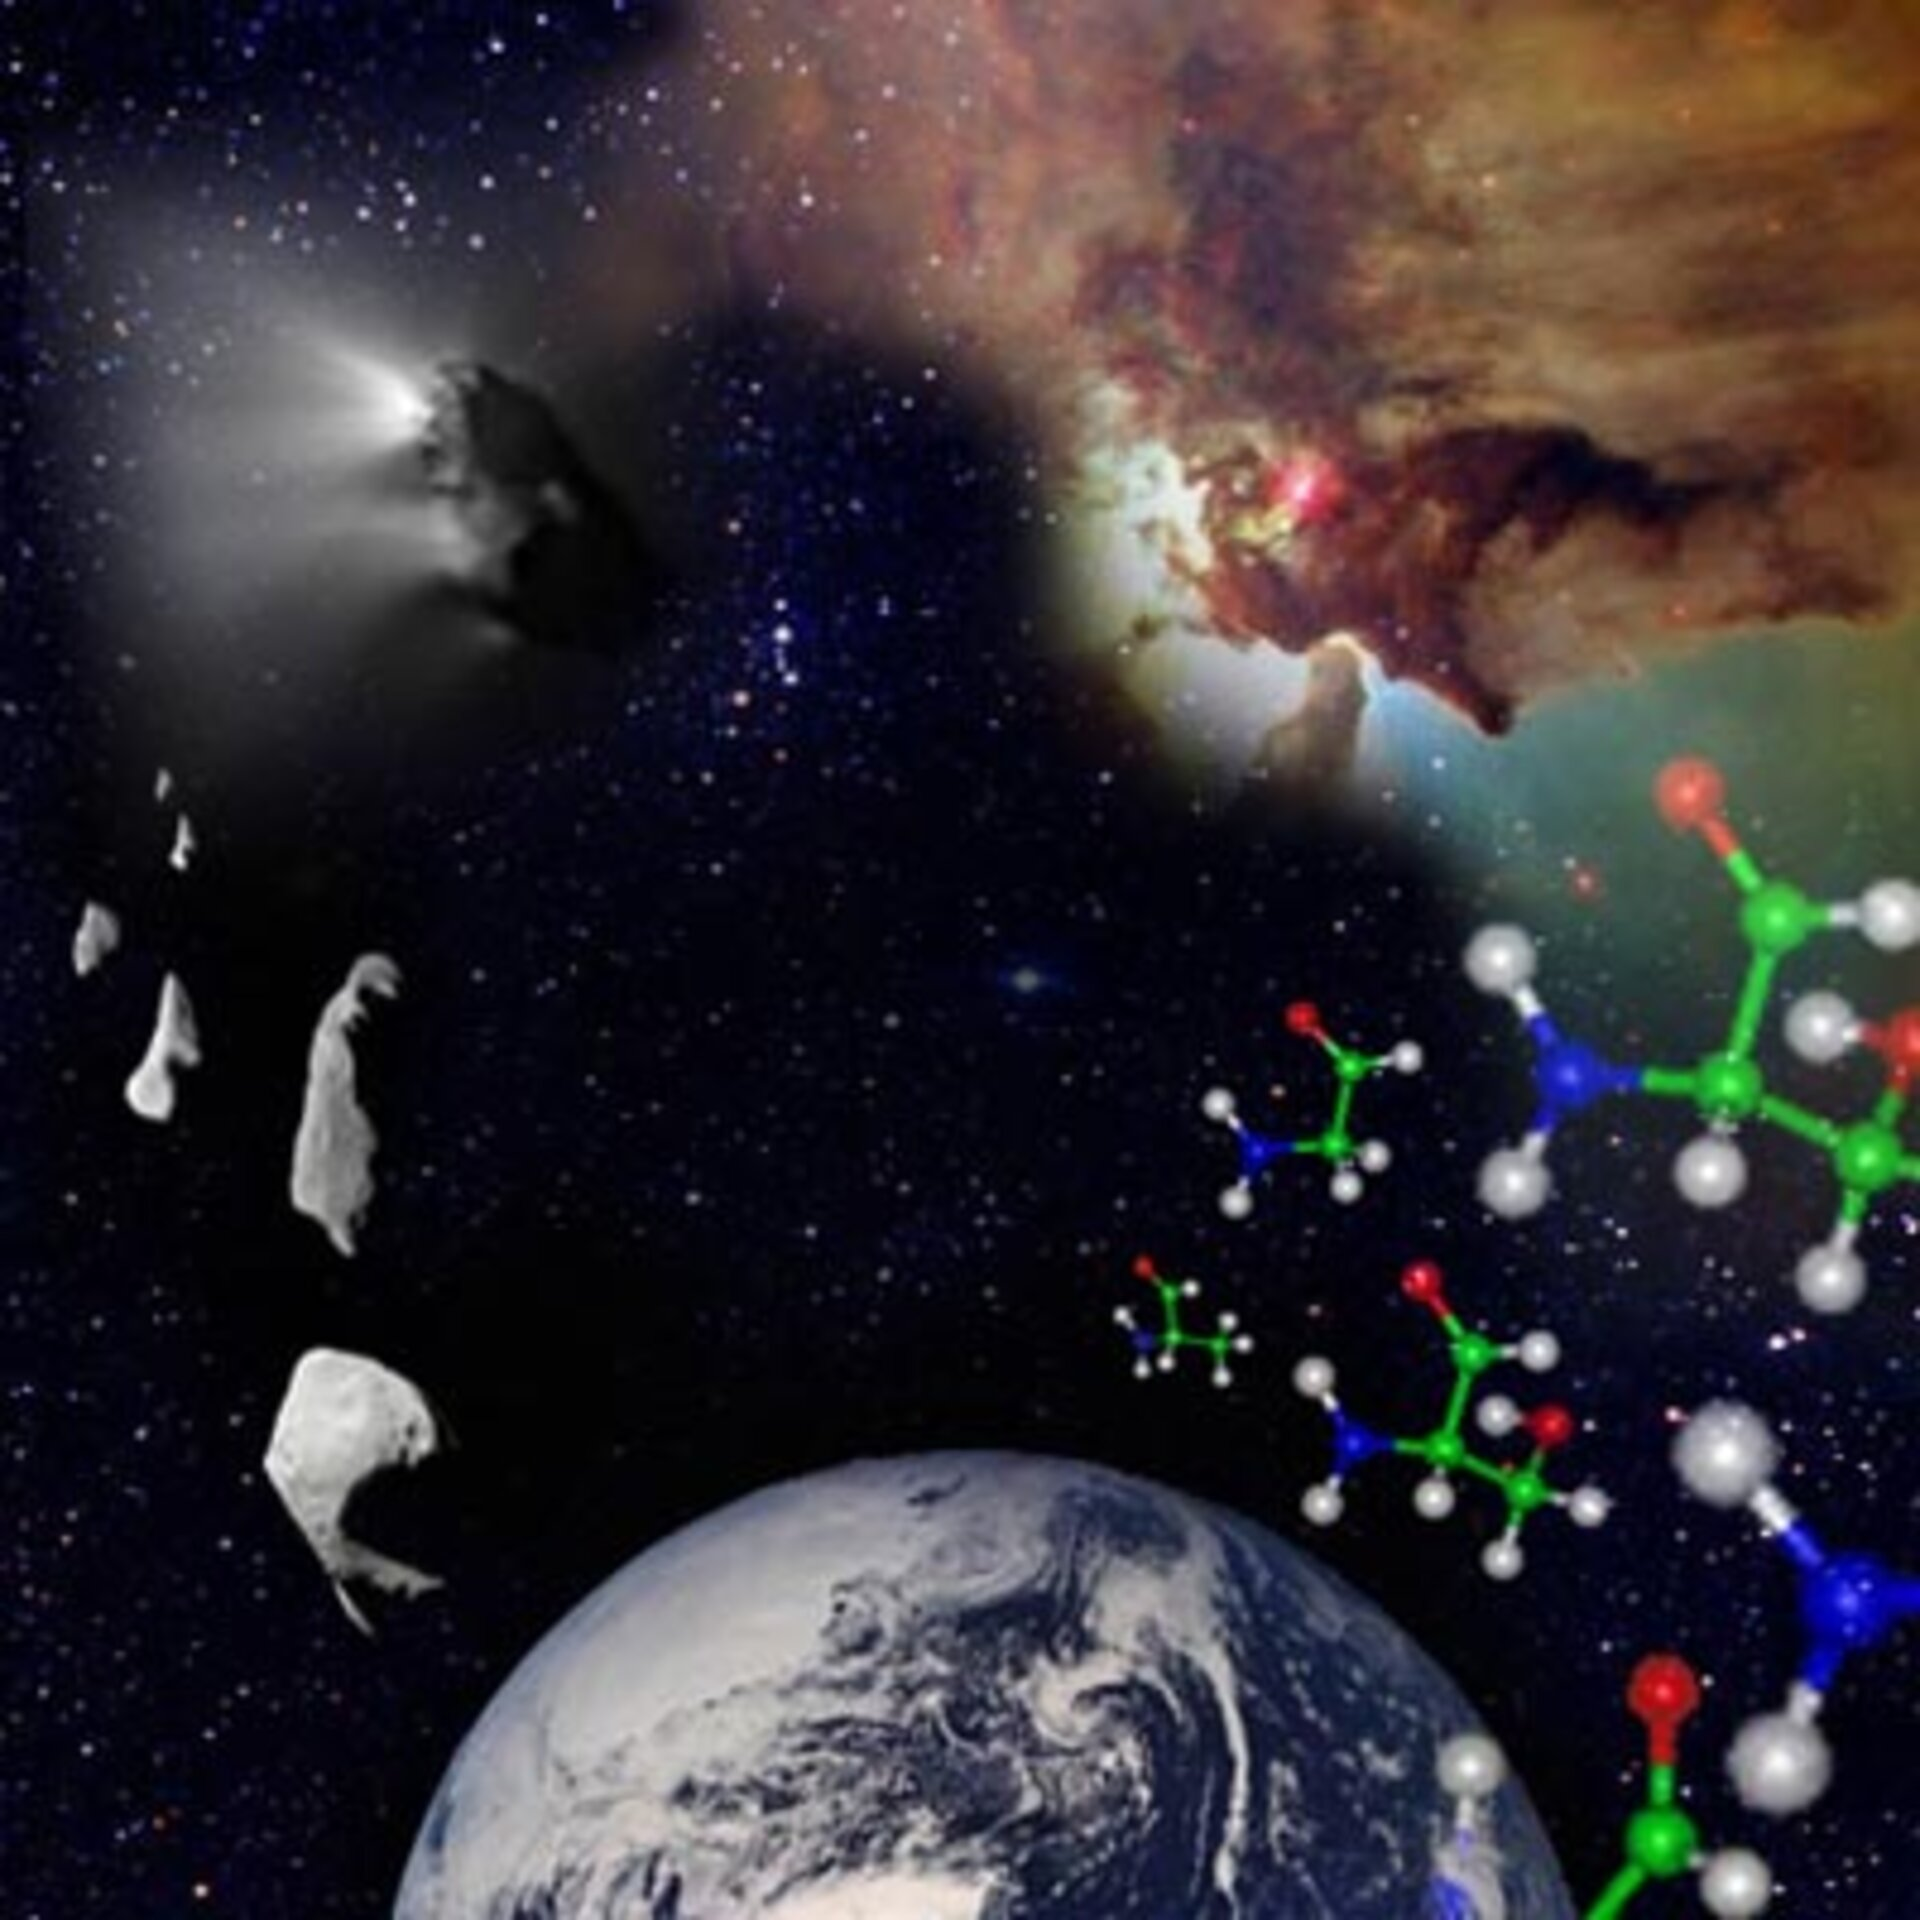 Did the main ingredients for life come from outer space?